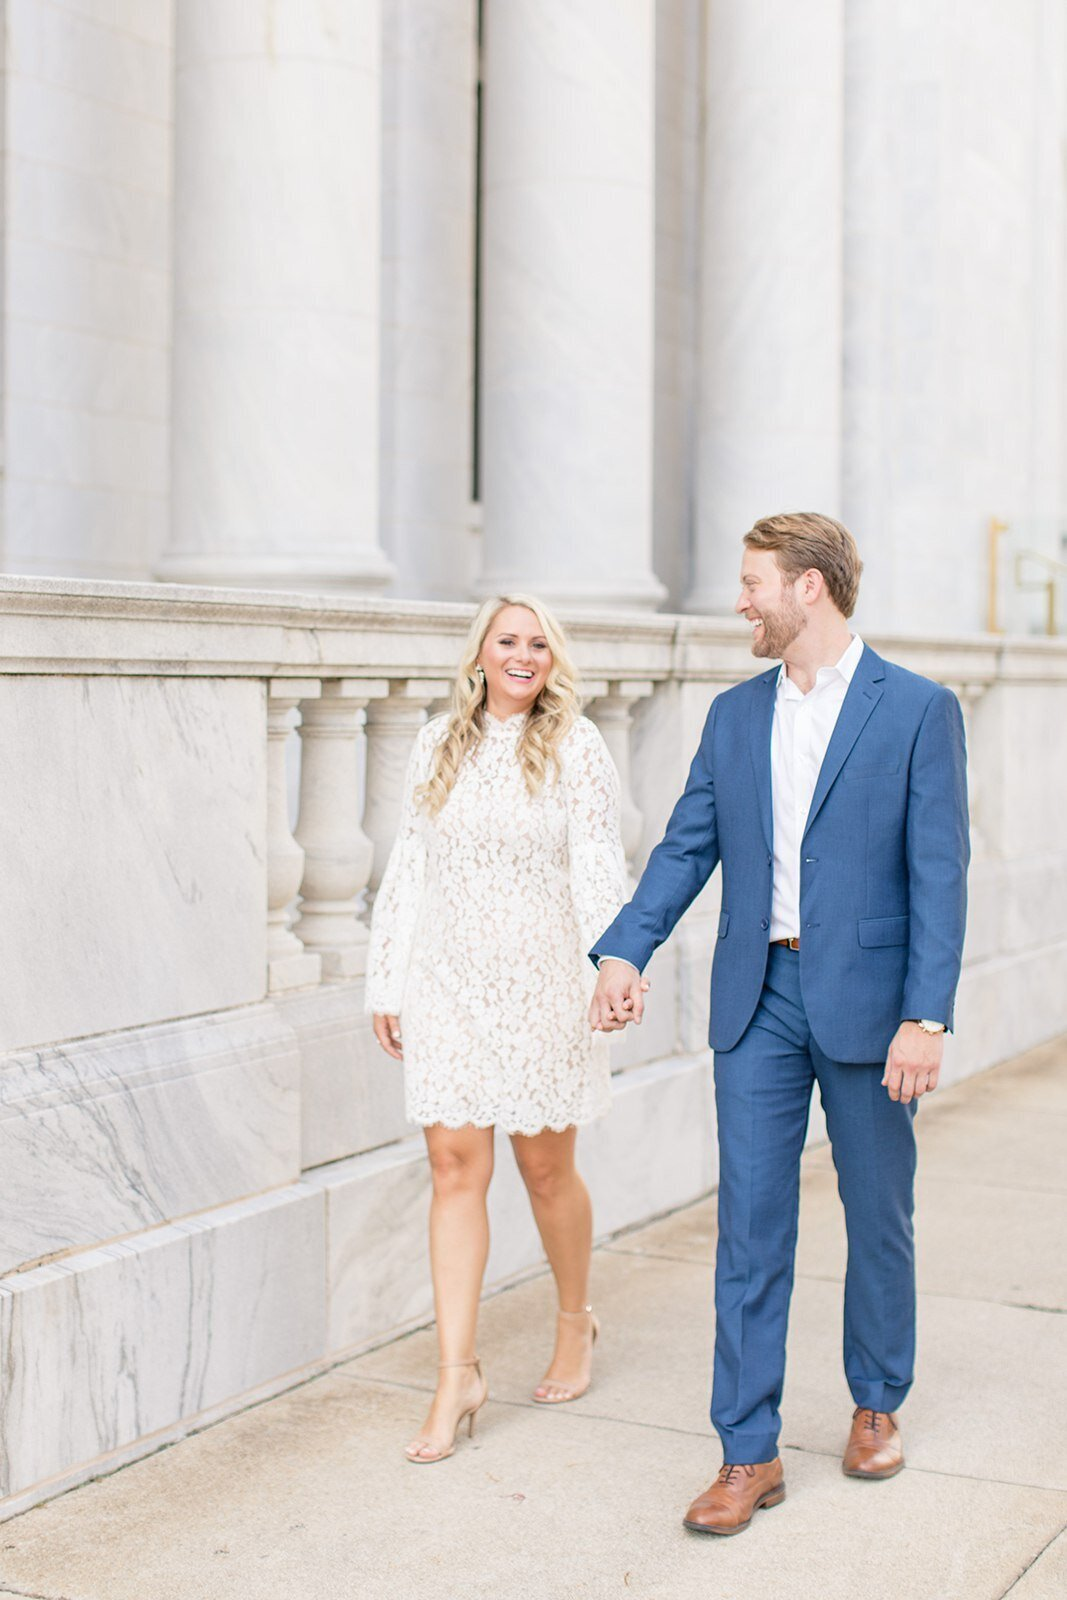 Birmingham, Alabama Wedding Photographers - Katie & Alec Photography Engagement Galleries 52